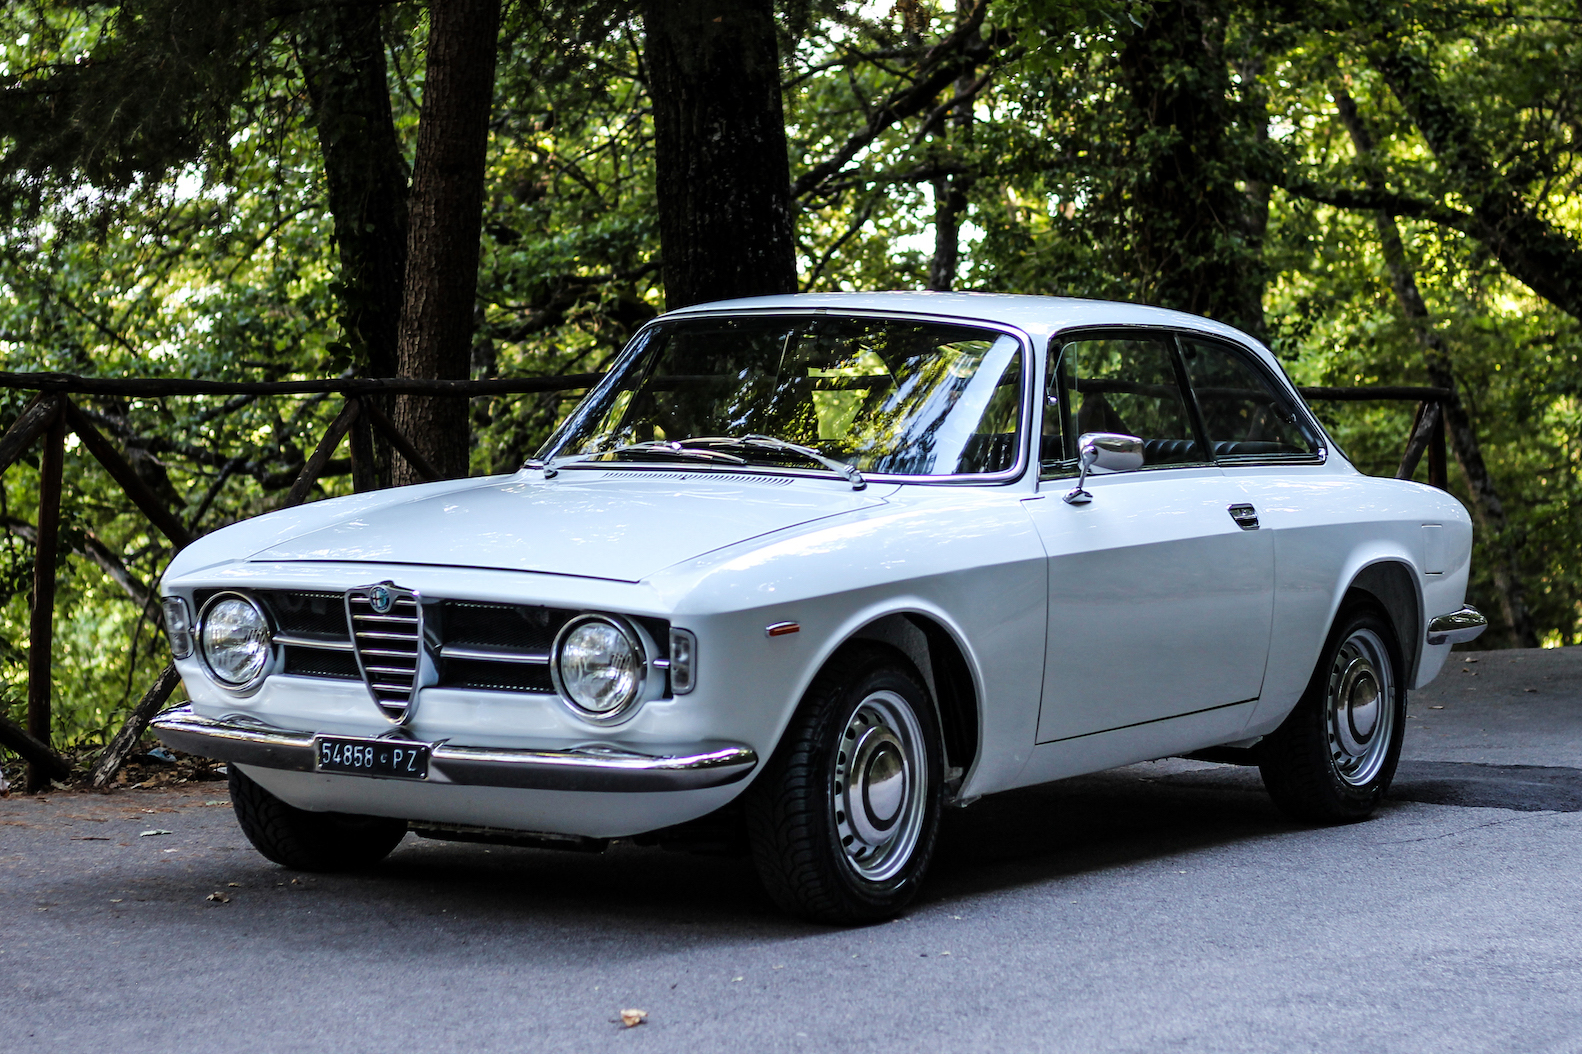 1970 ALFA ROMEO GT 1300 JUNIOR 'SCALINO' - LHD